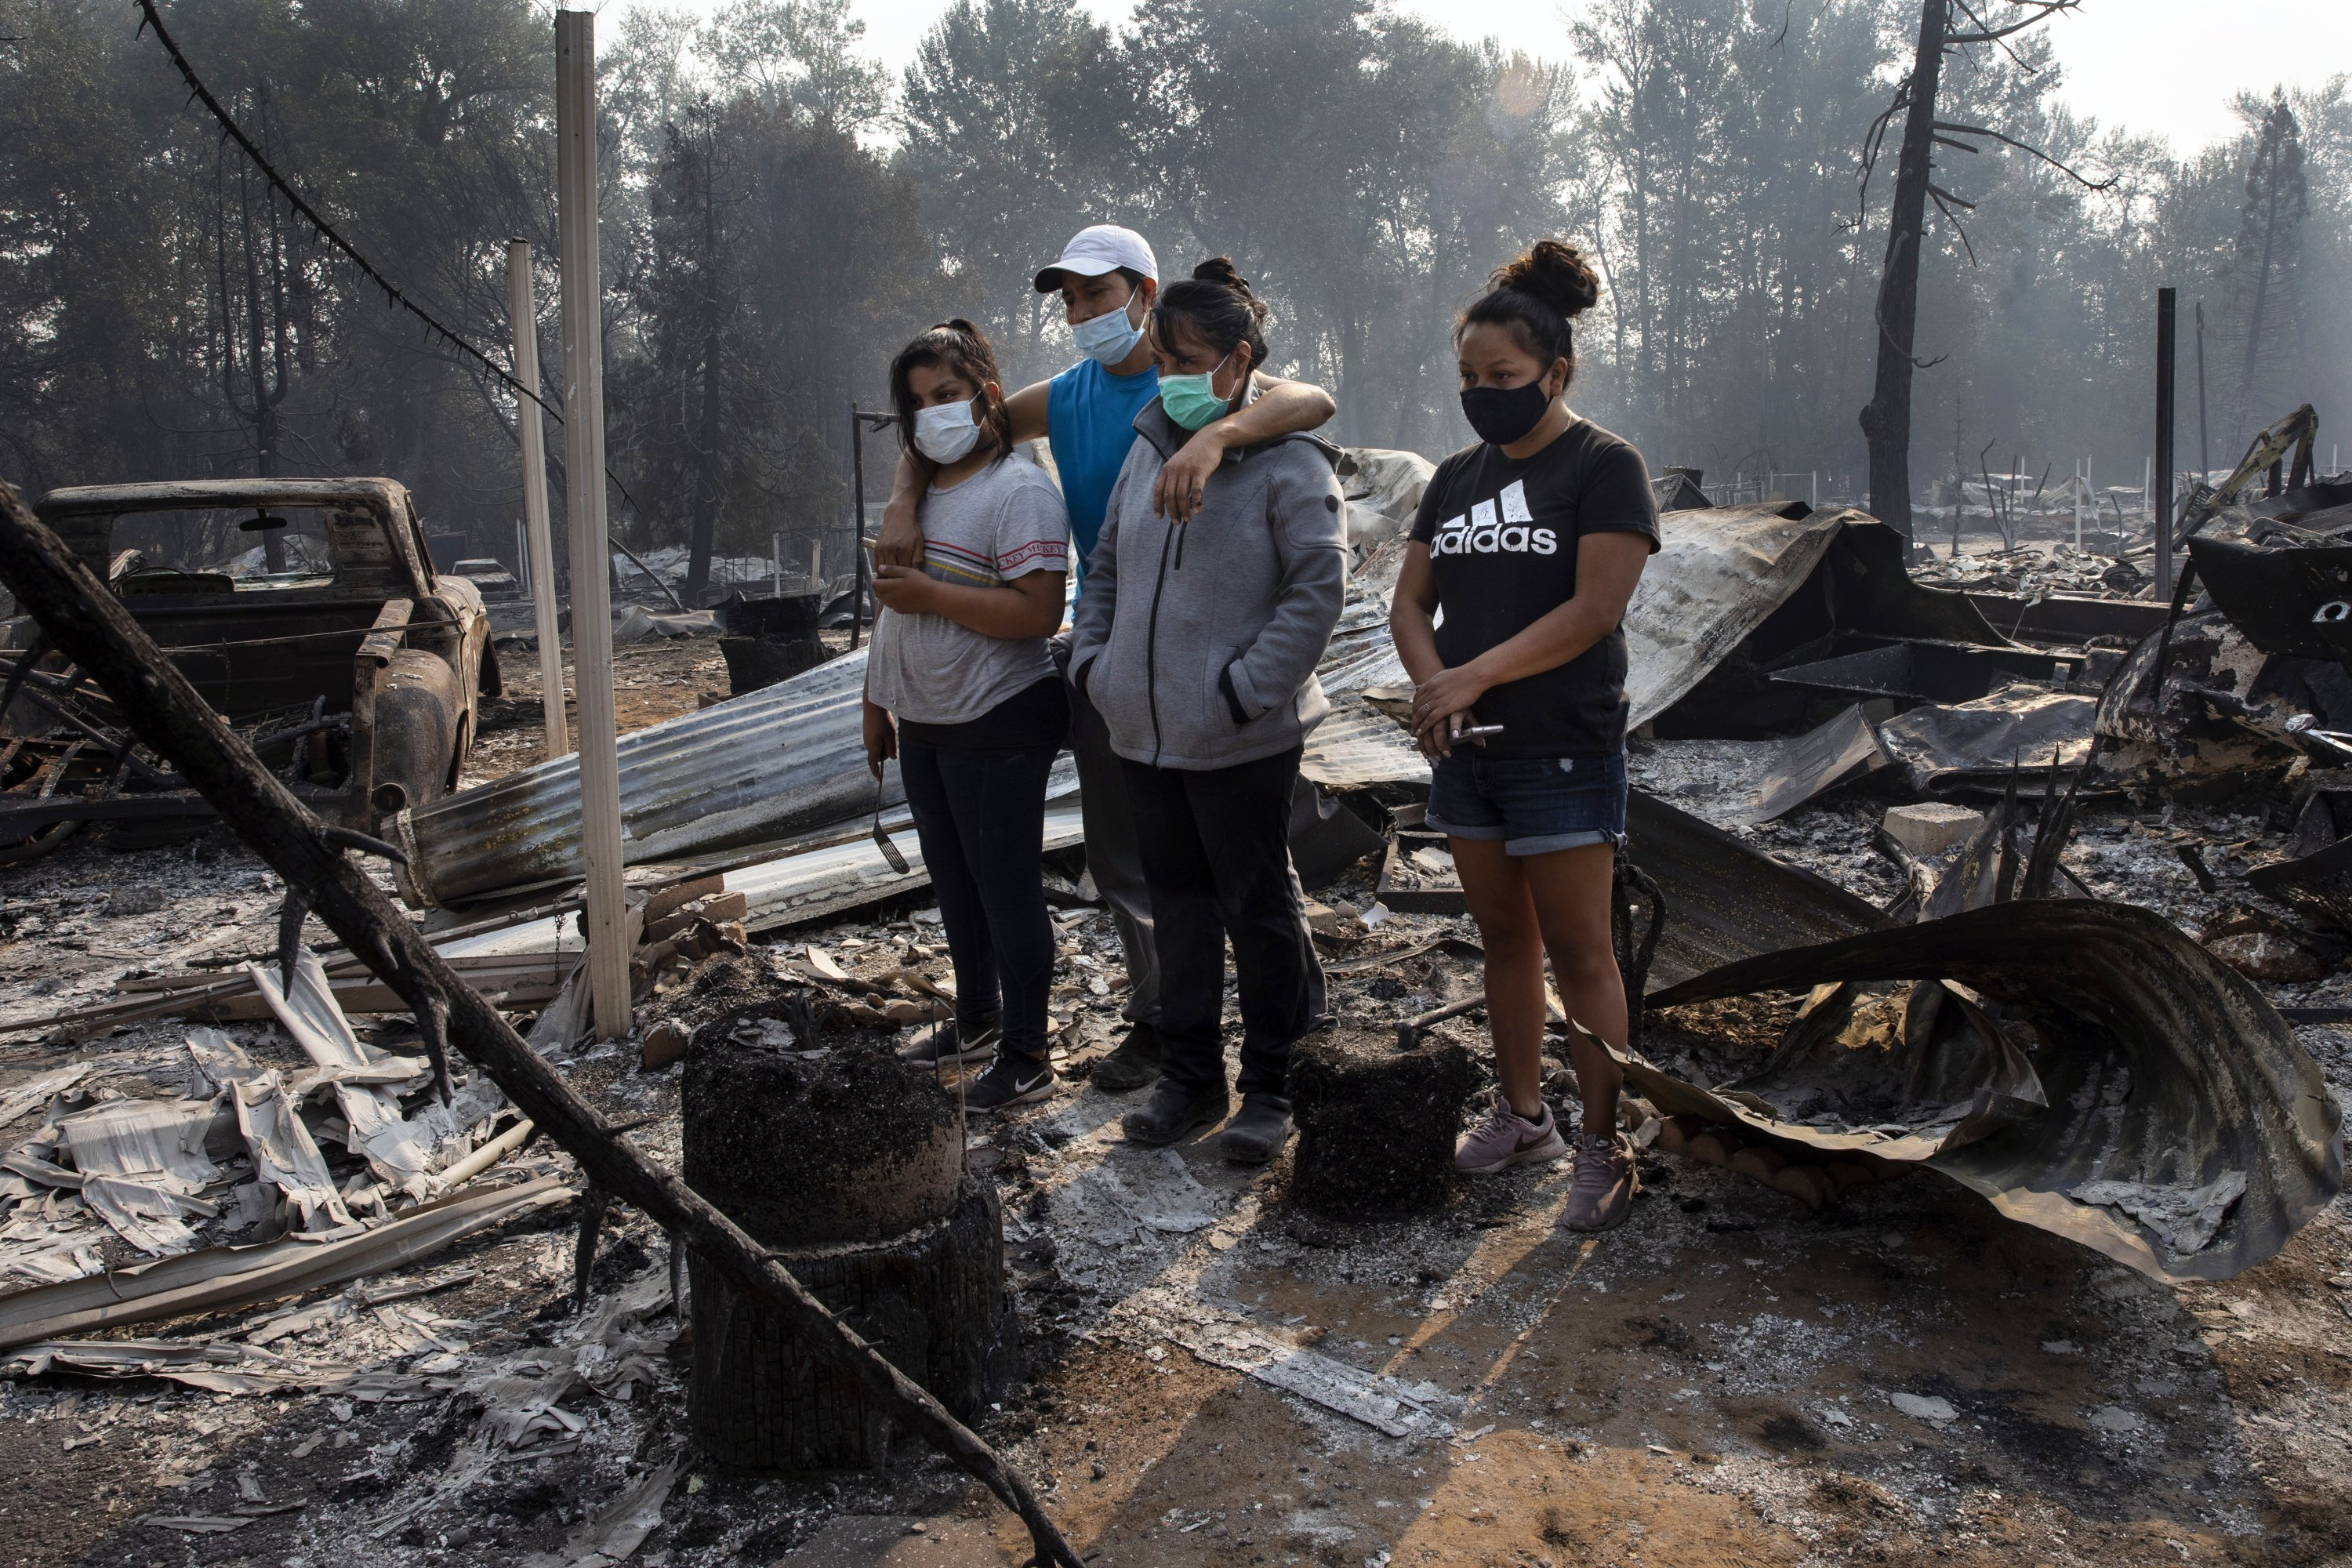 The Reyes family looks at the destruction of their home at Coleman Creek Estates mobile home park in Phoenix, Oregon, U.S., Sept. 10, 2020. (AP Photo)